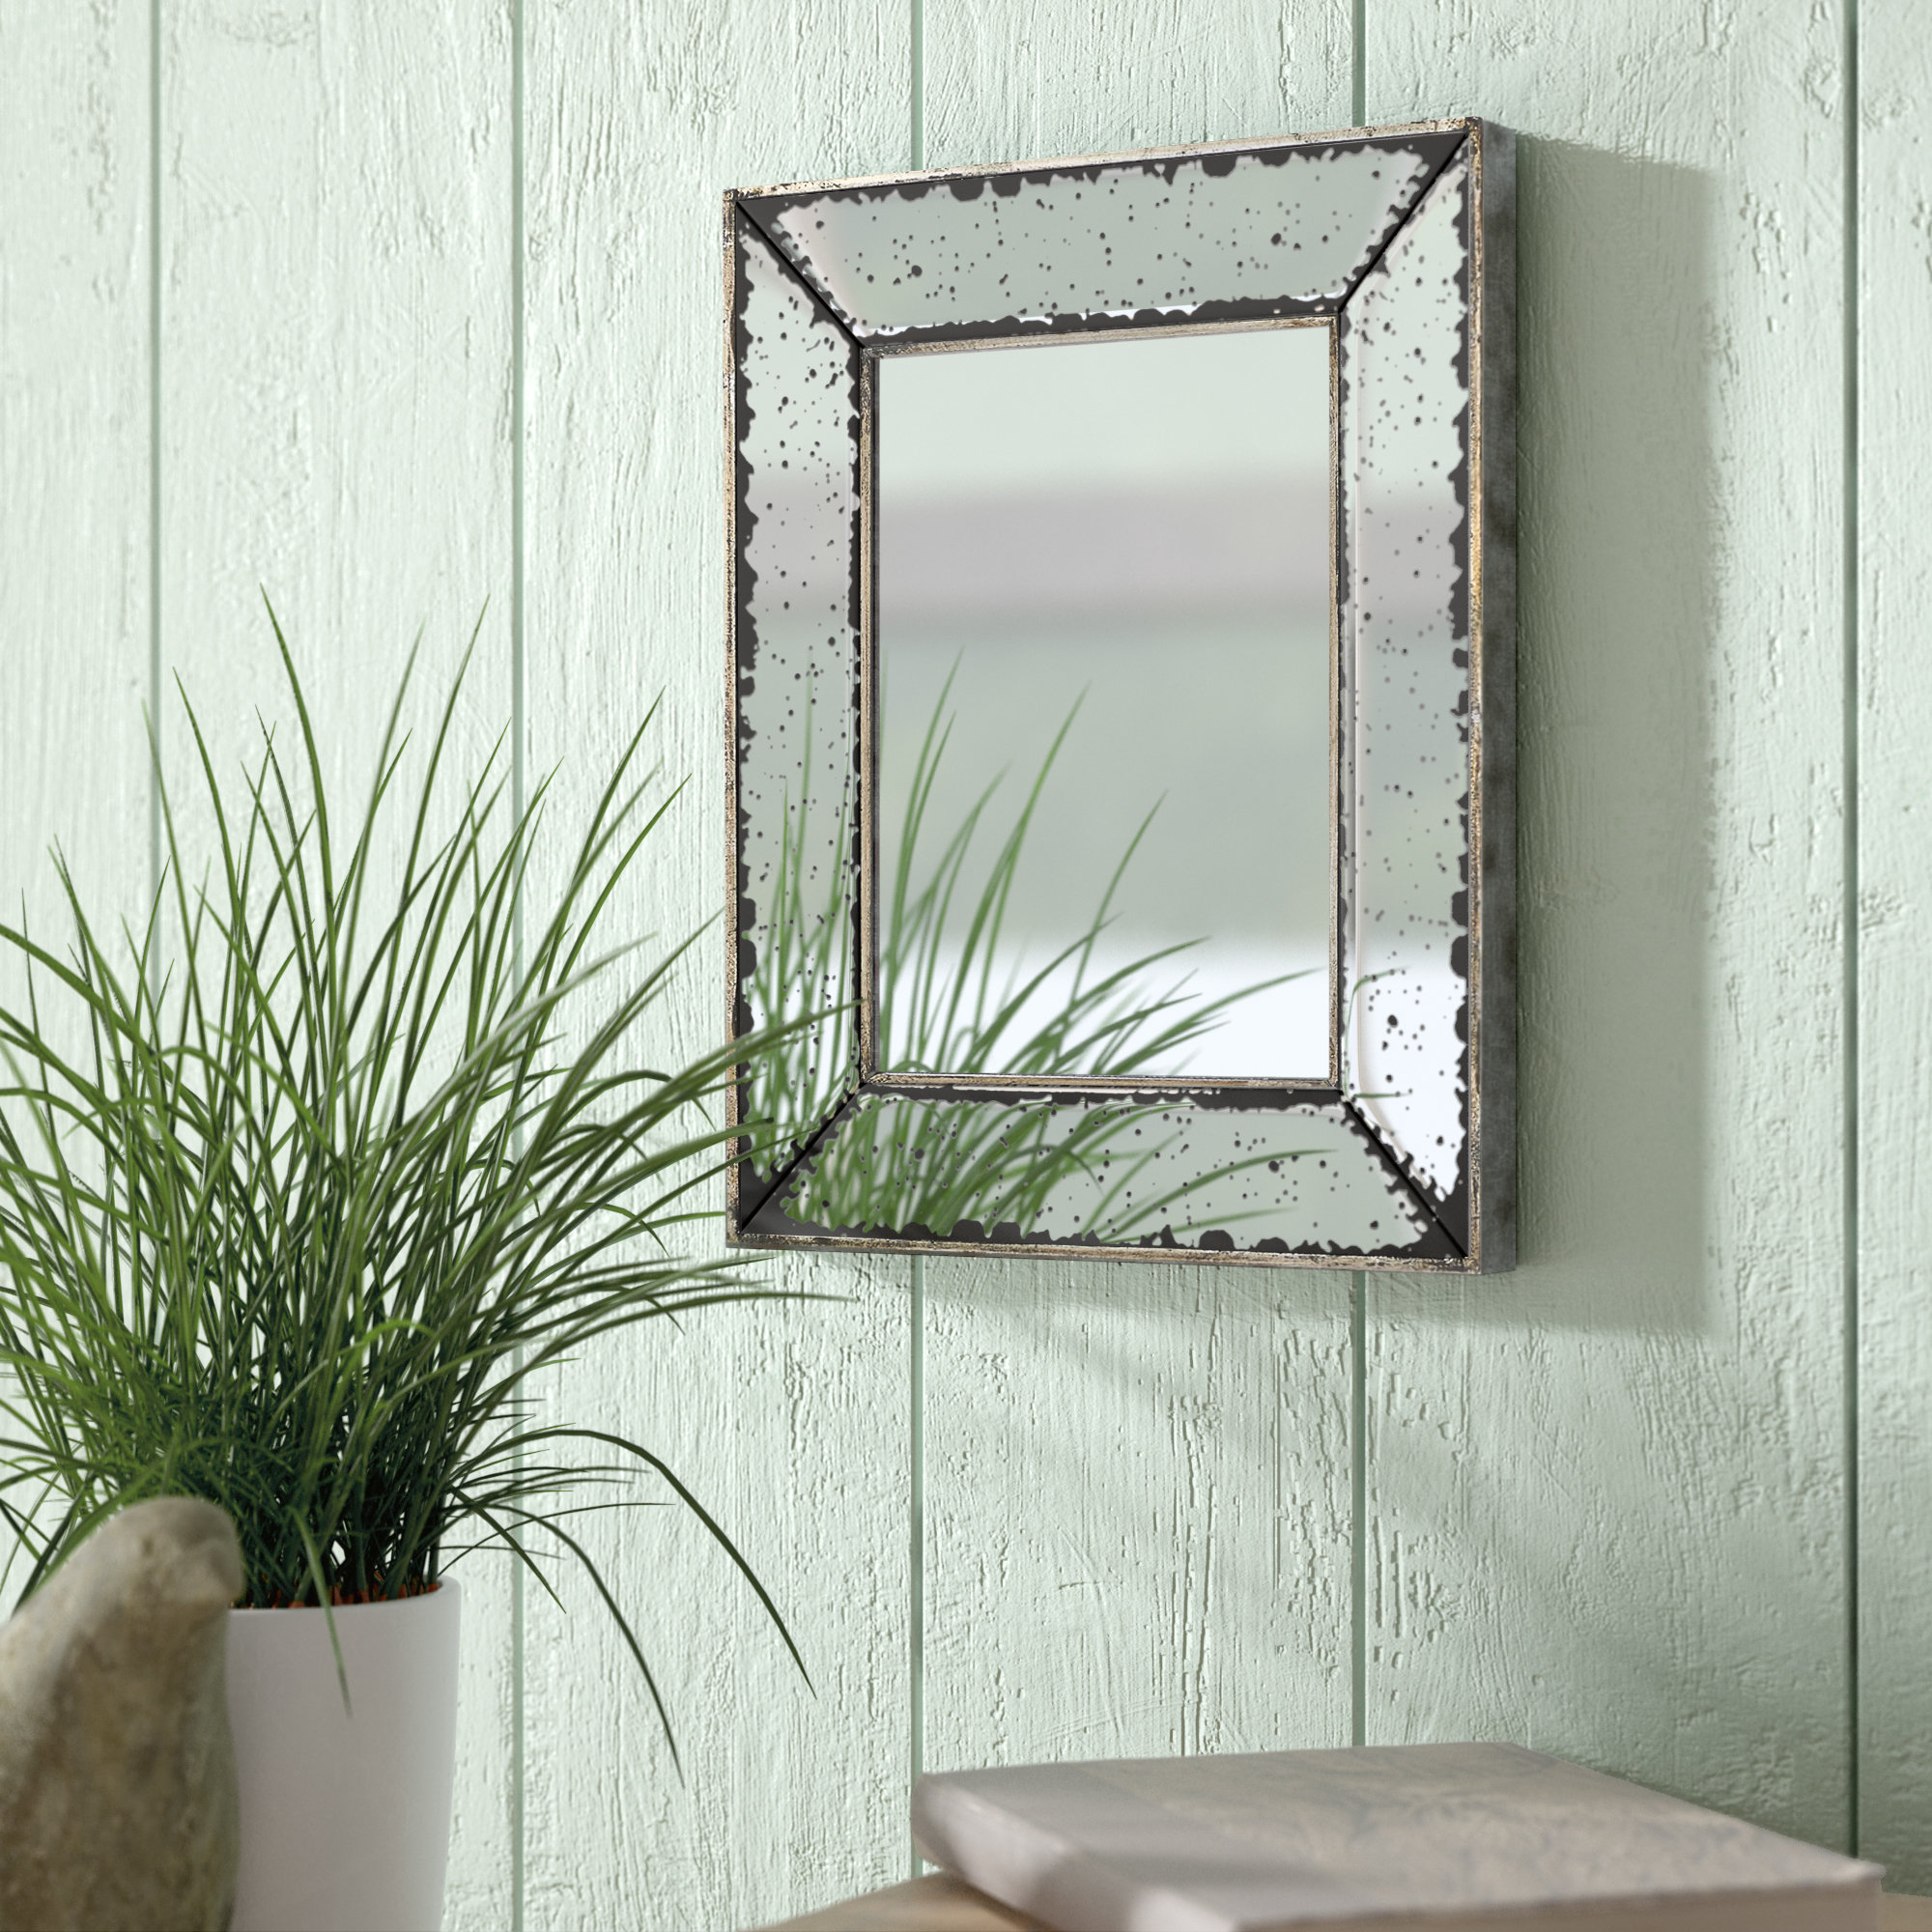 Auvillar Accent Mirror Regarding Most Up To Date Knott Modern & Contemporary Accent Mirrors (View 6 of 20)